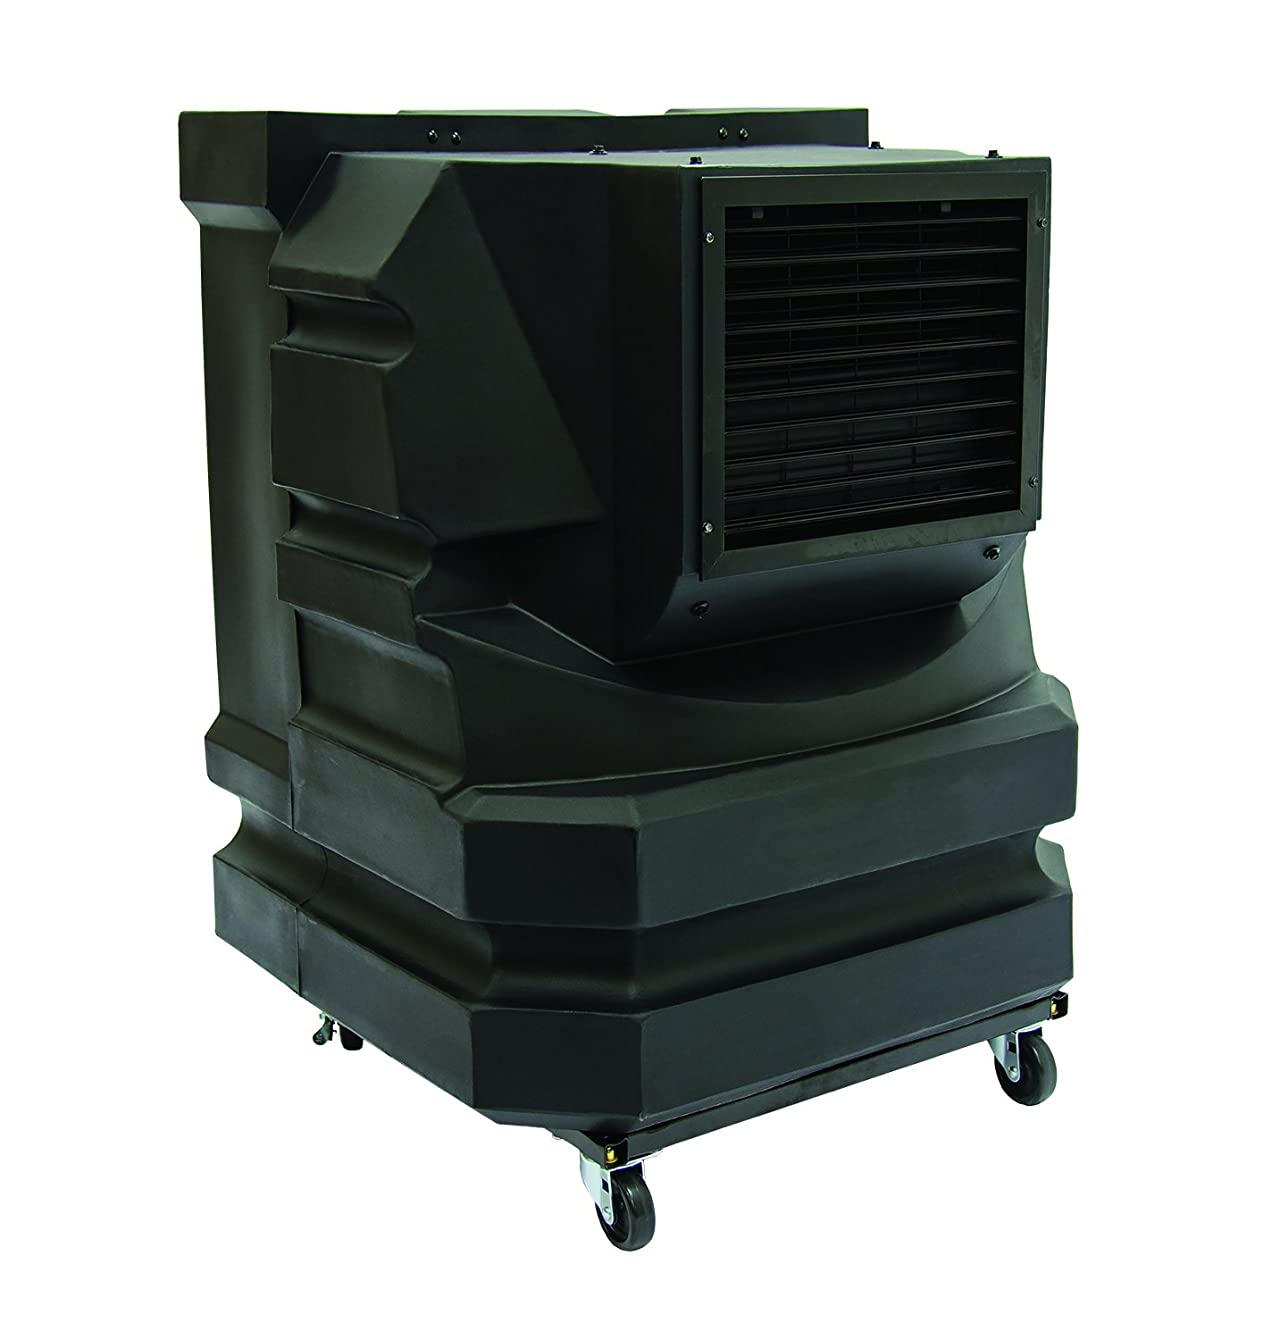 TPI Corporation EVAP-Mini 700 Portable Workstation Evaporative Cooler, 1/3 HP, Water Level Sight, Sump Drain, Black, Lowers Temps by up to 30 Degrees, 16 Gallon Tank